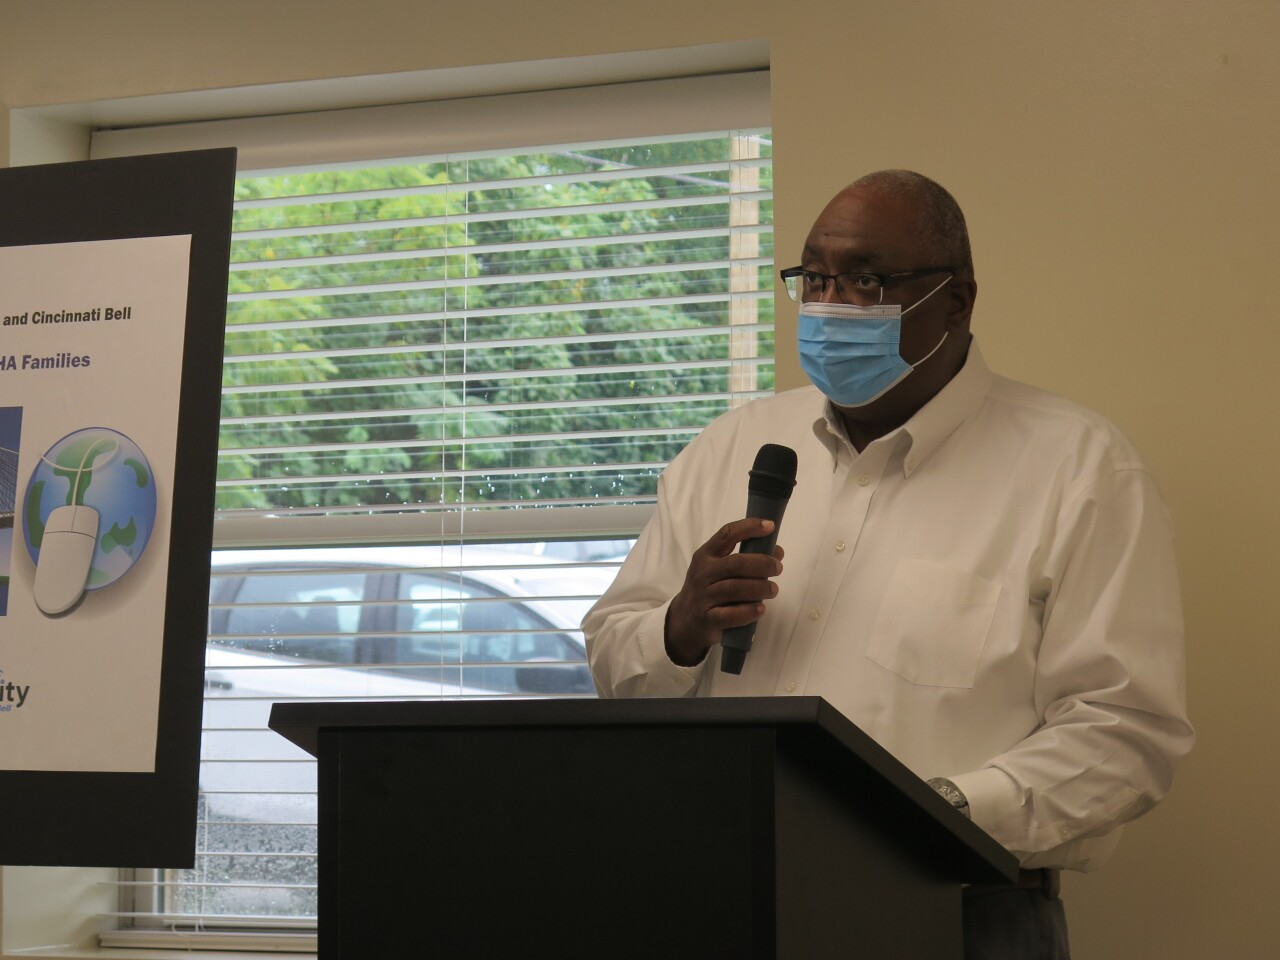 Gregory Johnson speaking at a ribbon-cutting at Marianna Terrace on Aug. 30, 2021. He is holding a microphone and wearing a white dress shirt, glasses and a mask over his nose and mouth.